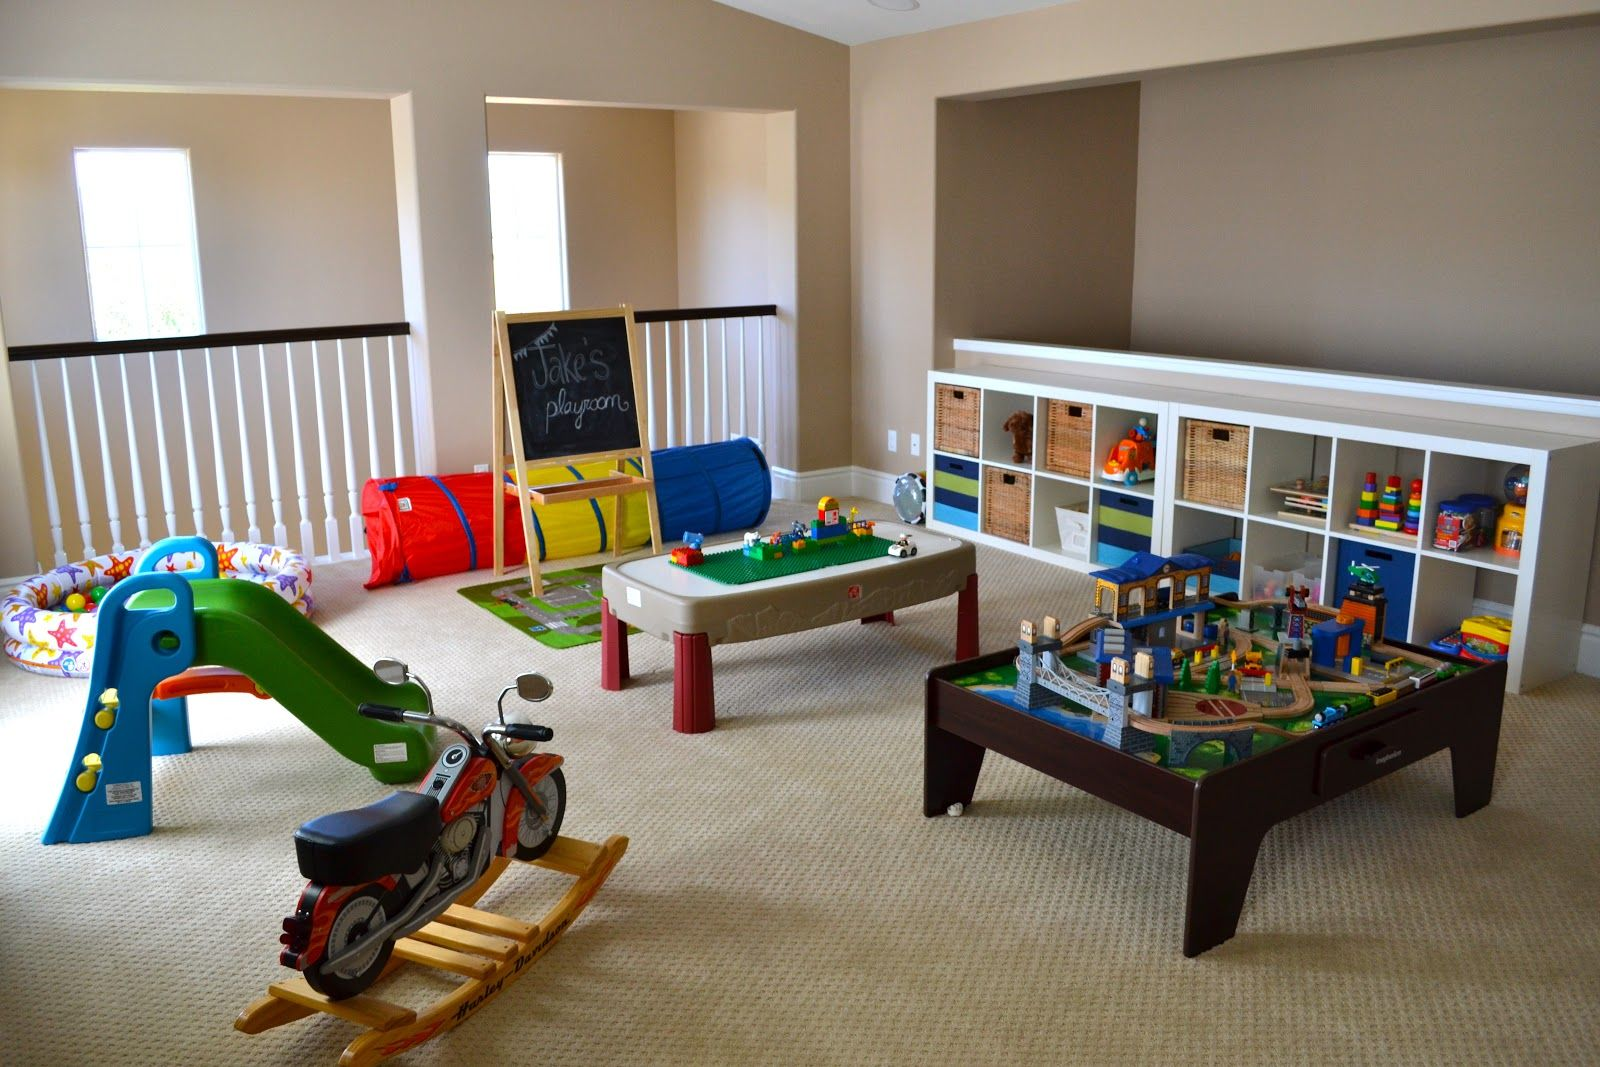 Stunning decorating ideas for a childs playroom | Toddler ...